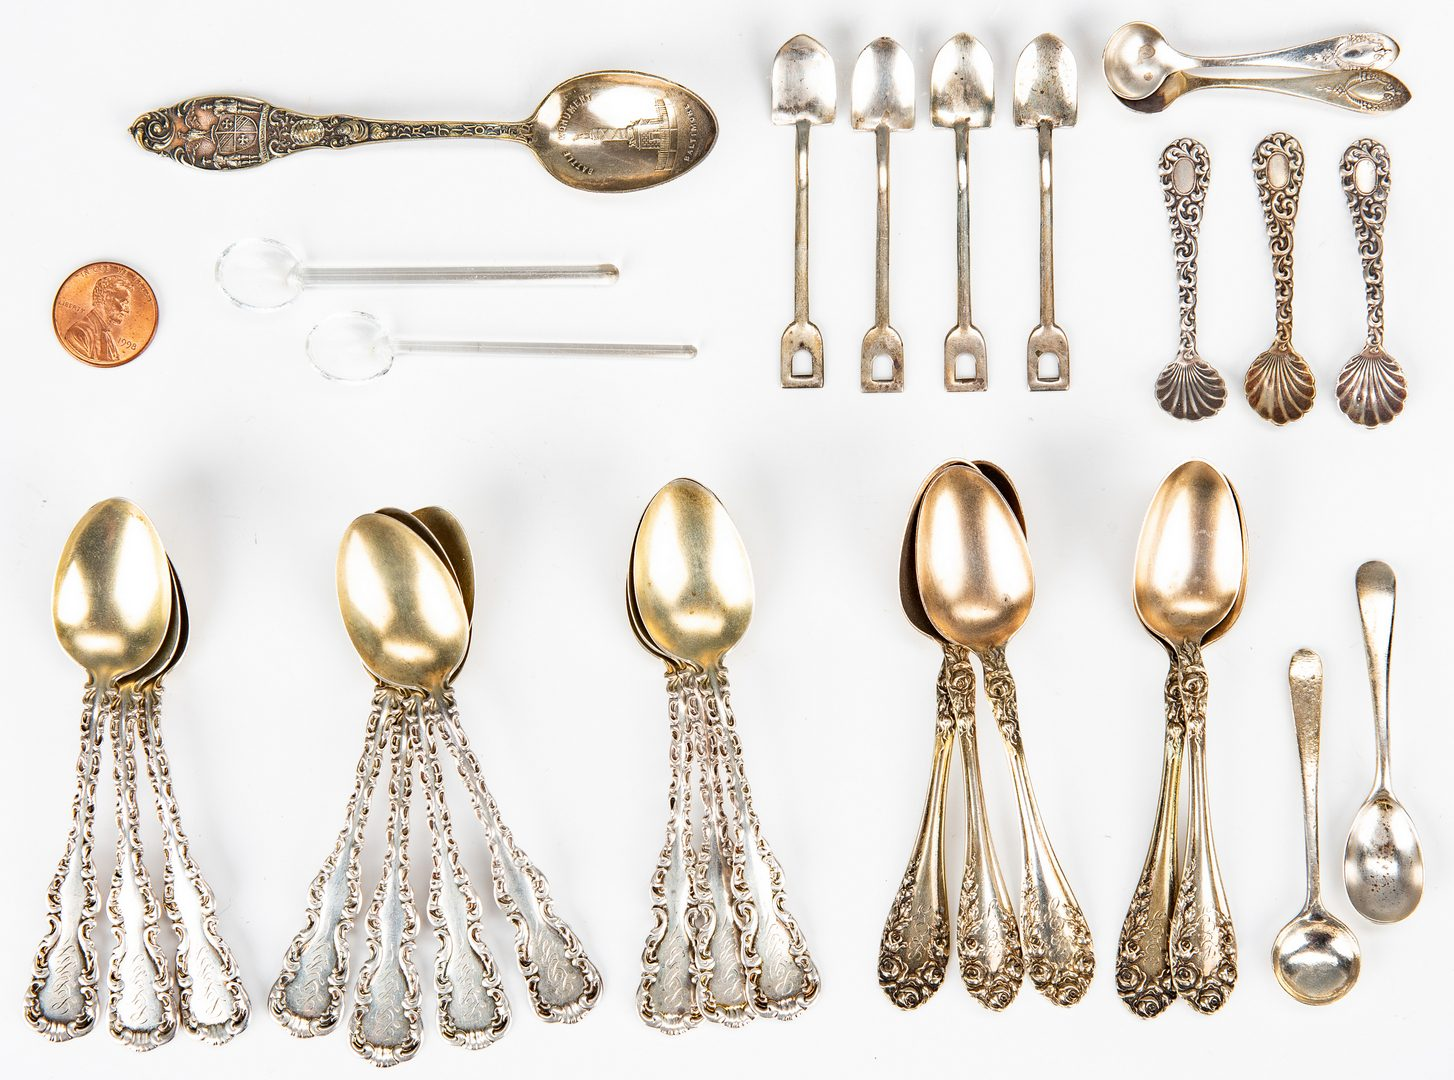 Lot 37: 82 Pcs. Assorted Vintage Sterling Flatware & Sterling Torah Pointer or Yad